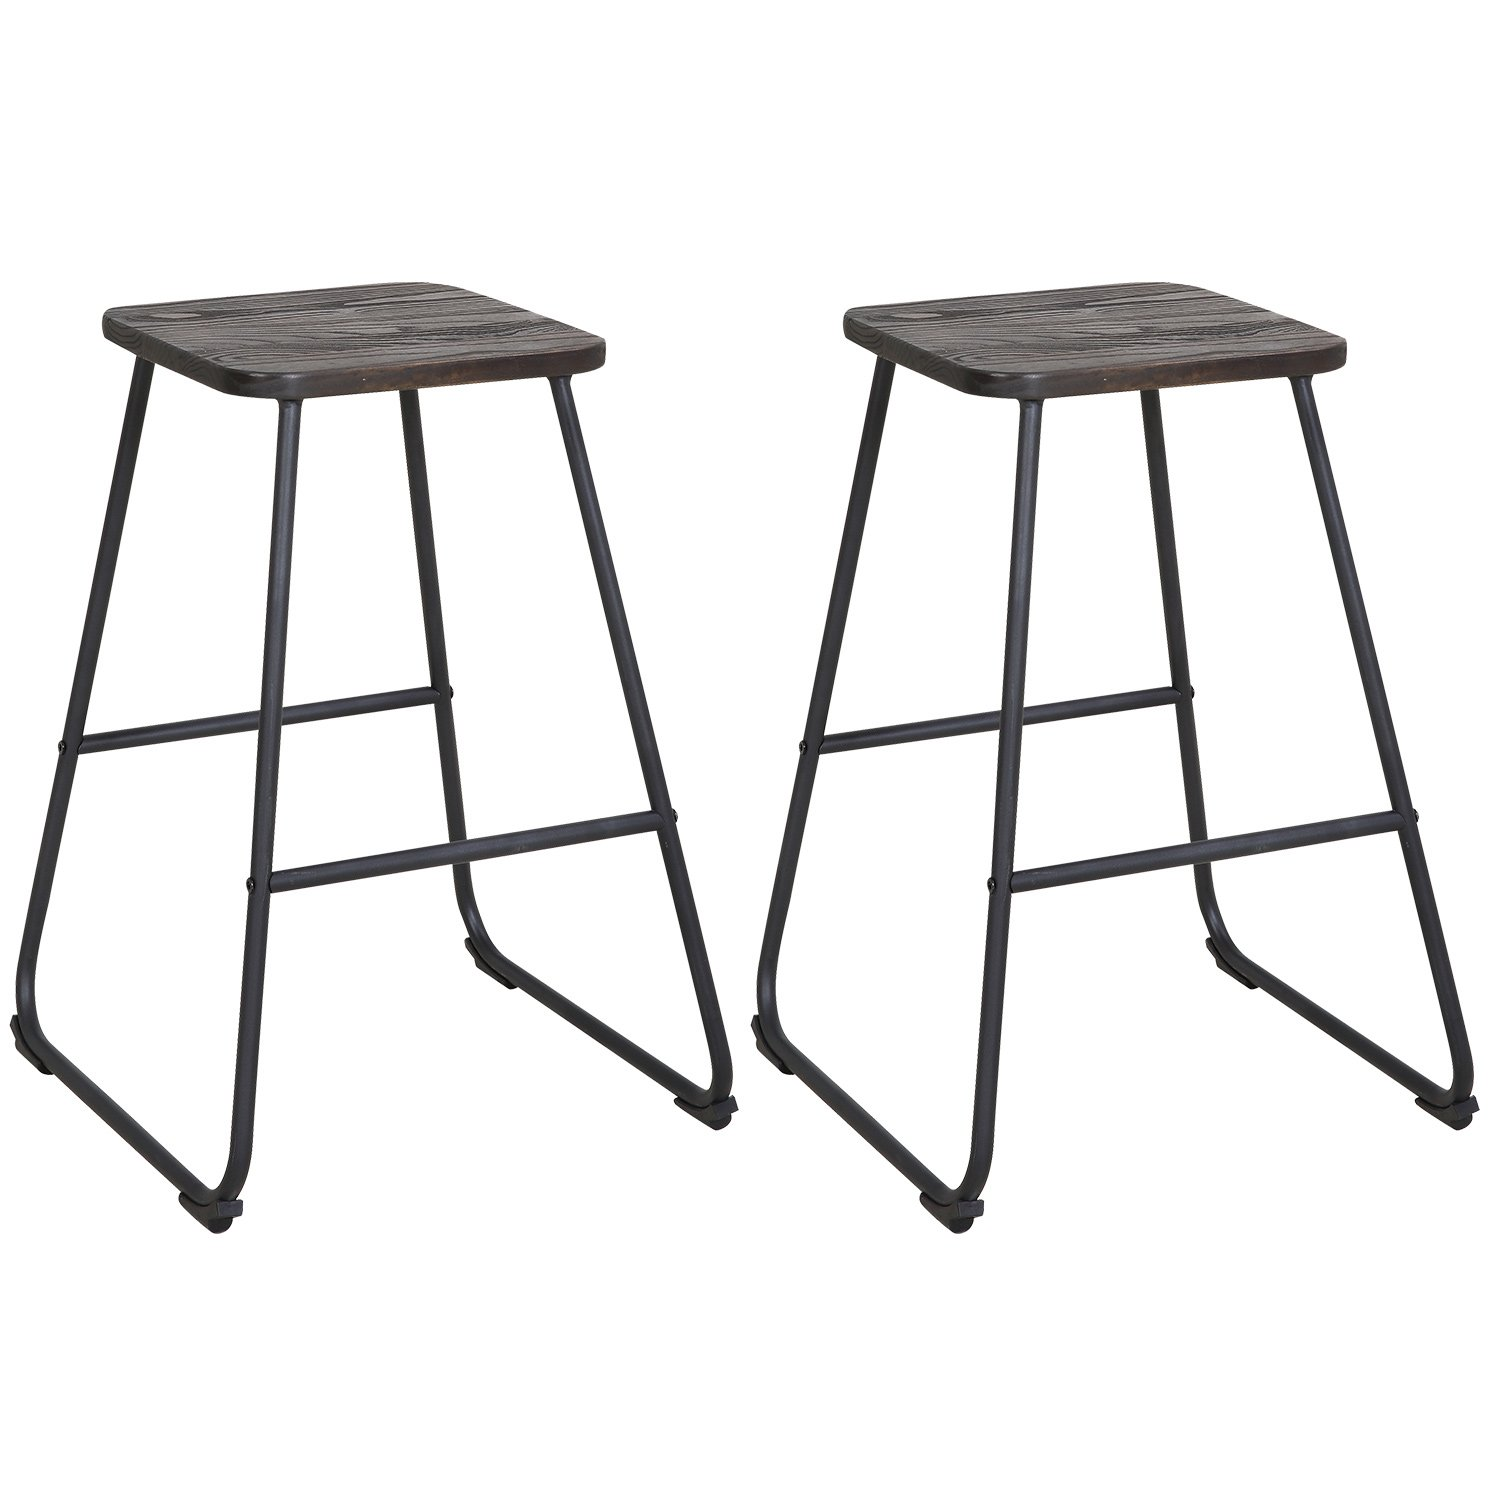 LCH 24'' Vintage Industrial Bar Stools, Home Kitchen Restaurant Metal Bar Chairs, Set of 2